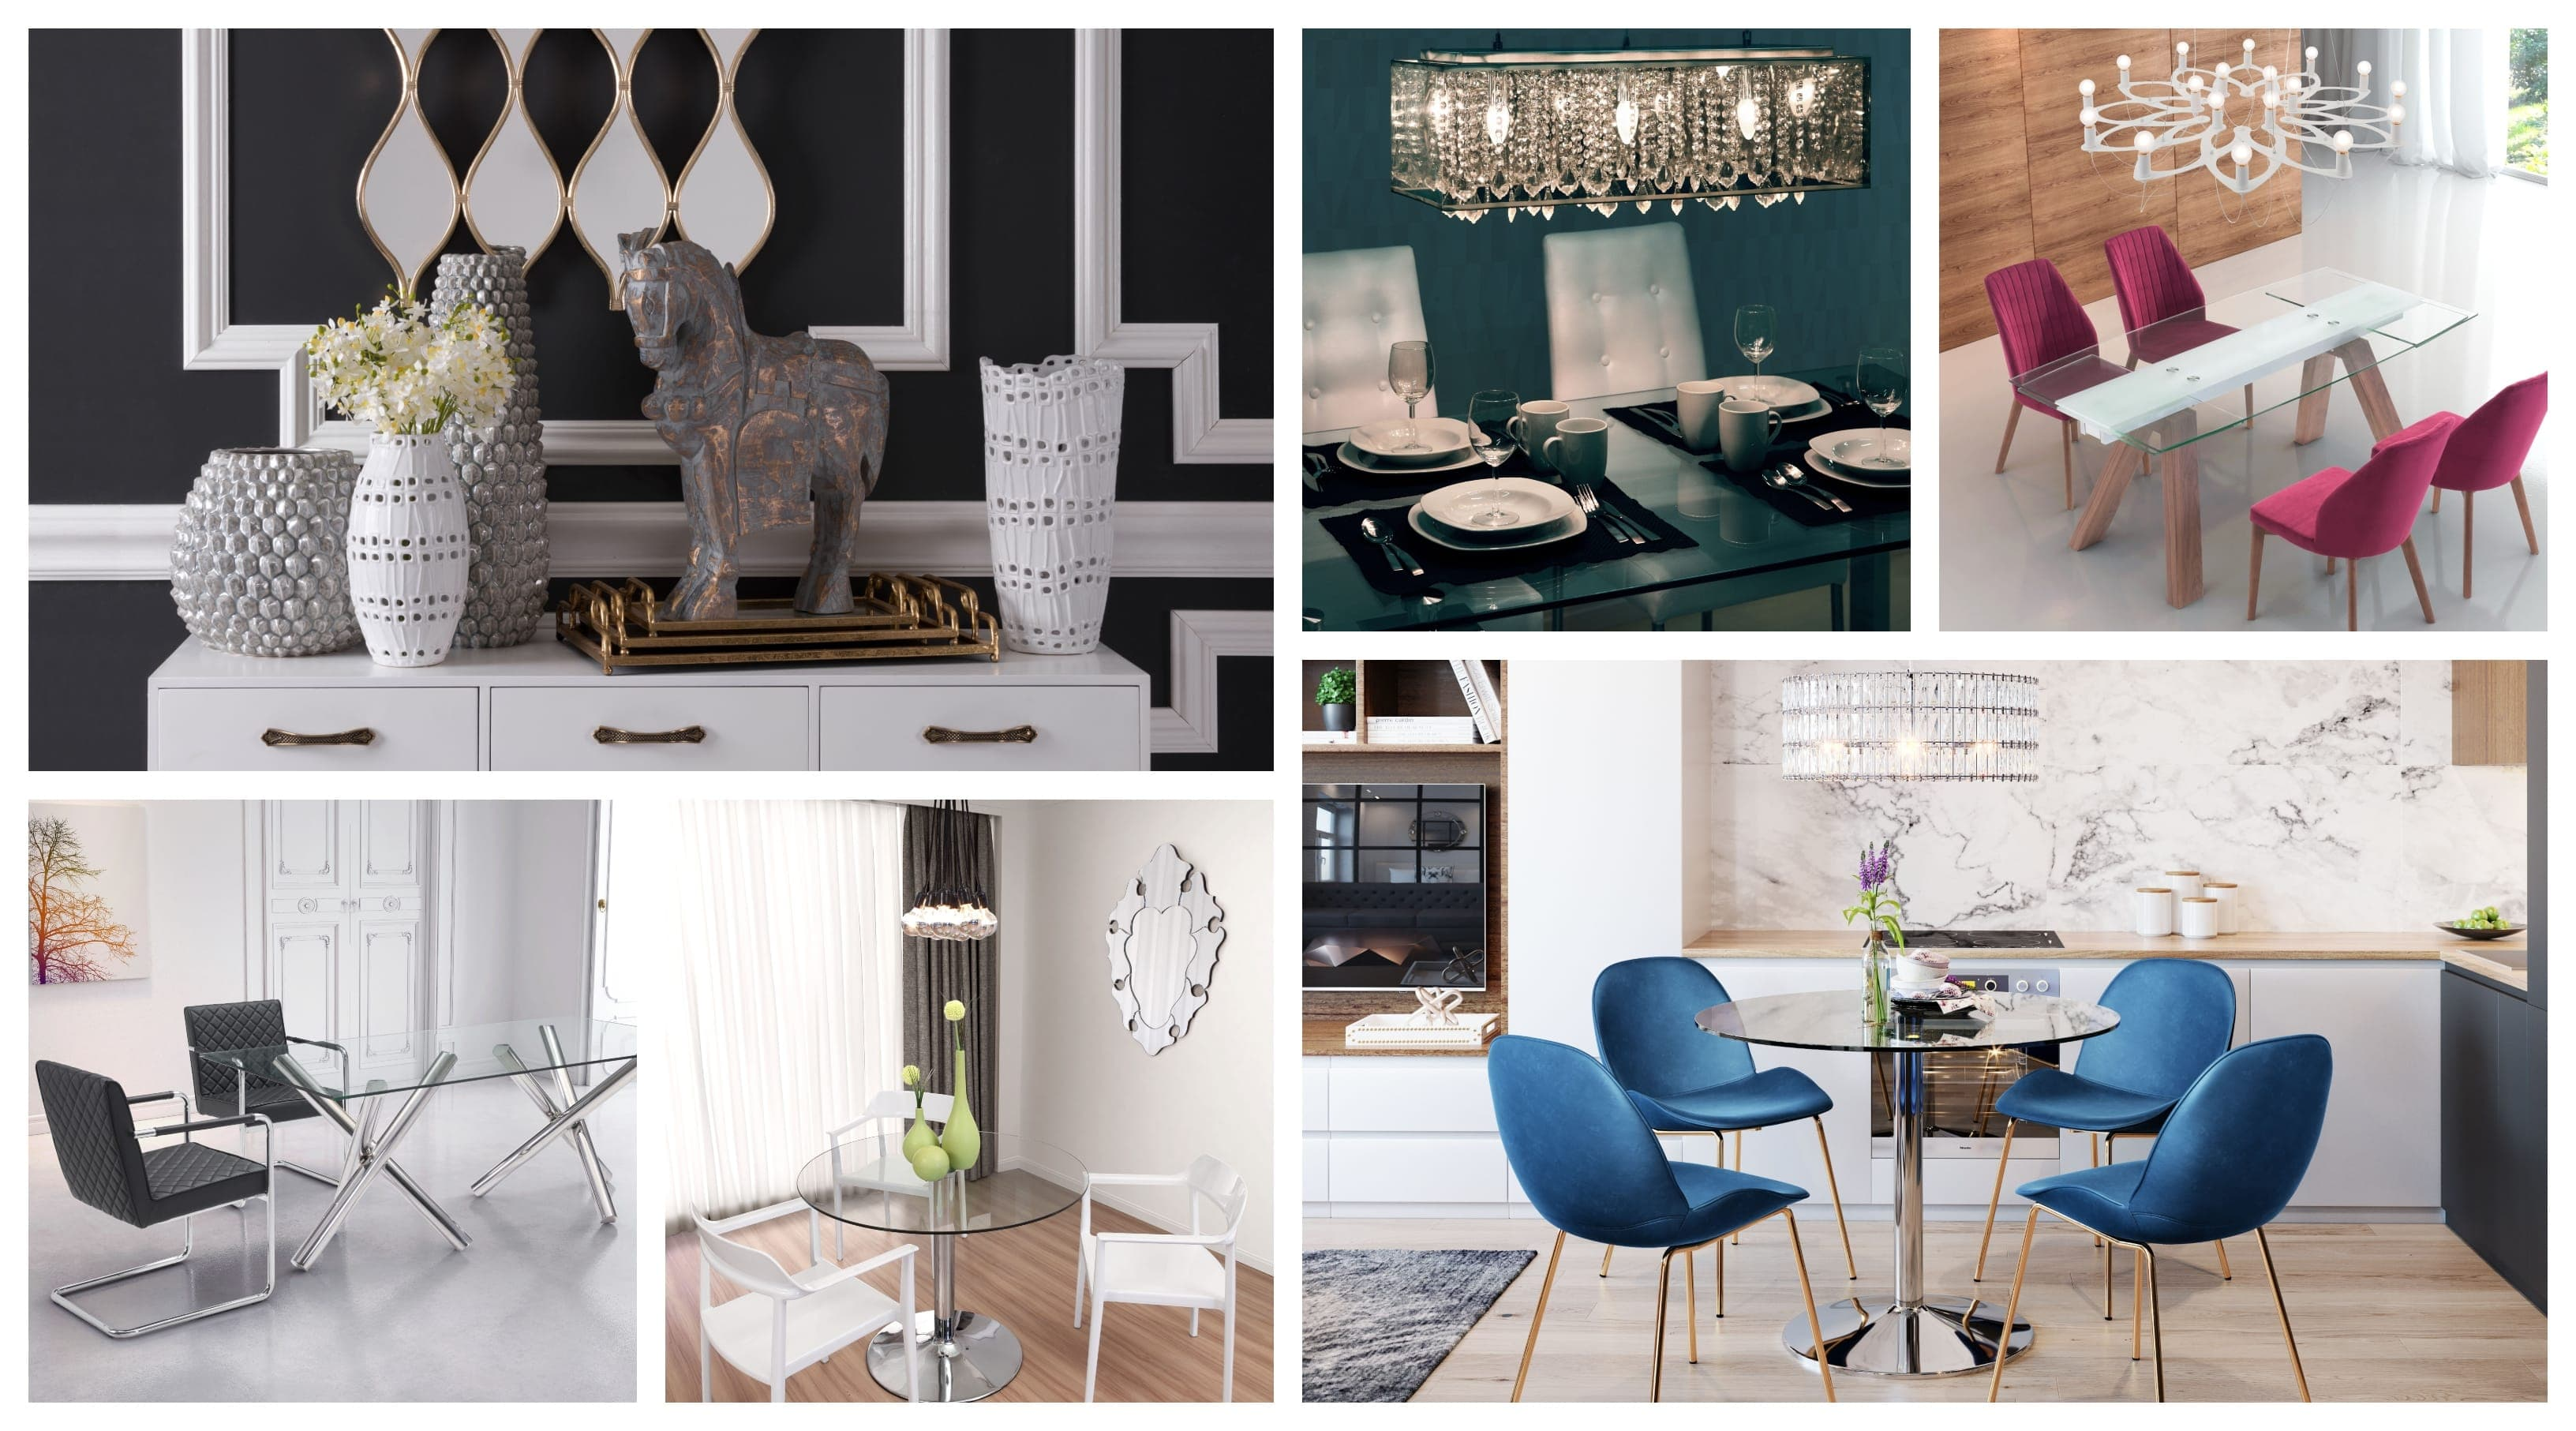 WAYS TO MAKE THE MOST OUT OF YOUR DINING ROOM